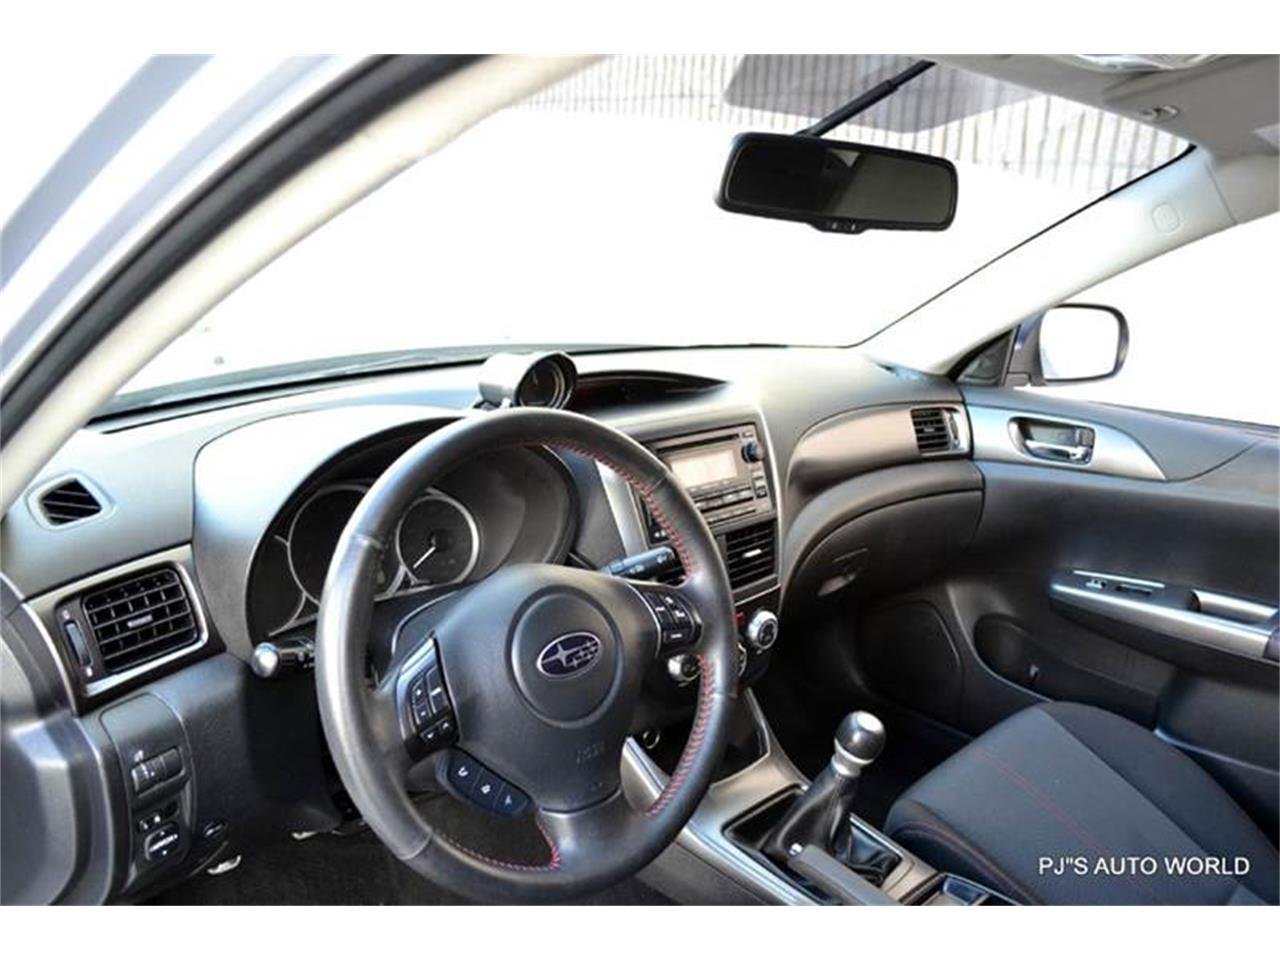 Large Picture of 2013 Subaru Impreza located in Clearwater Florida - $19,900.00 Offered by PJ's Auto World - J6WM